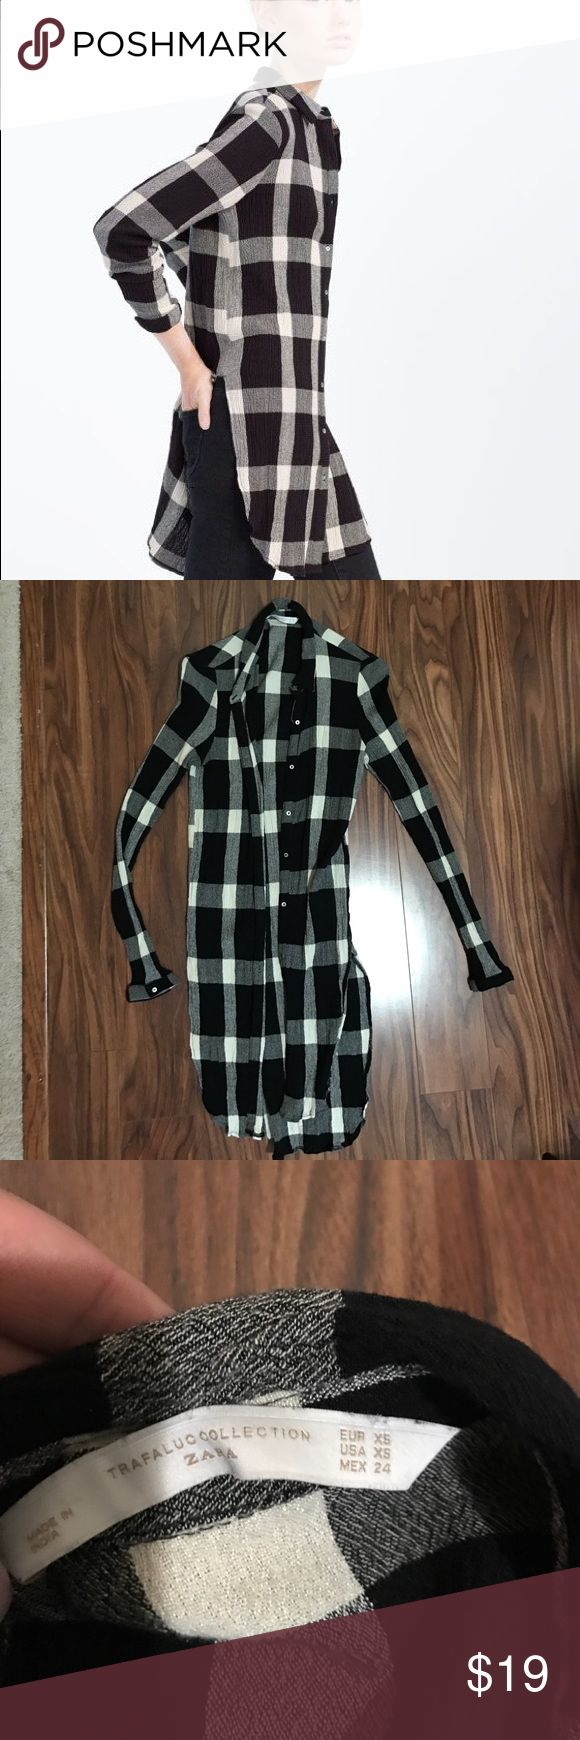 🔥SALE🔥 Zara trafaluc plaid tunic top Size XS - true to size. Long tunic button down by Zara. Black and white. Great condition. Bundle with 2 more items in my closet for 30% off Zara Tops